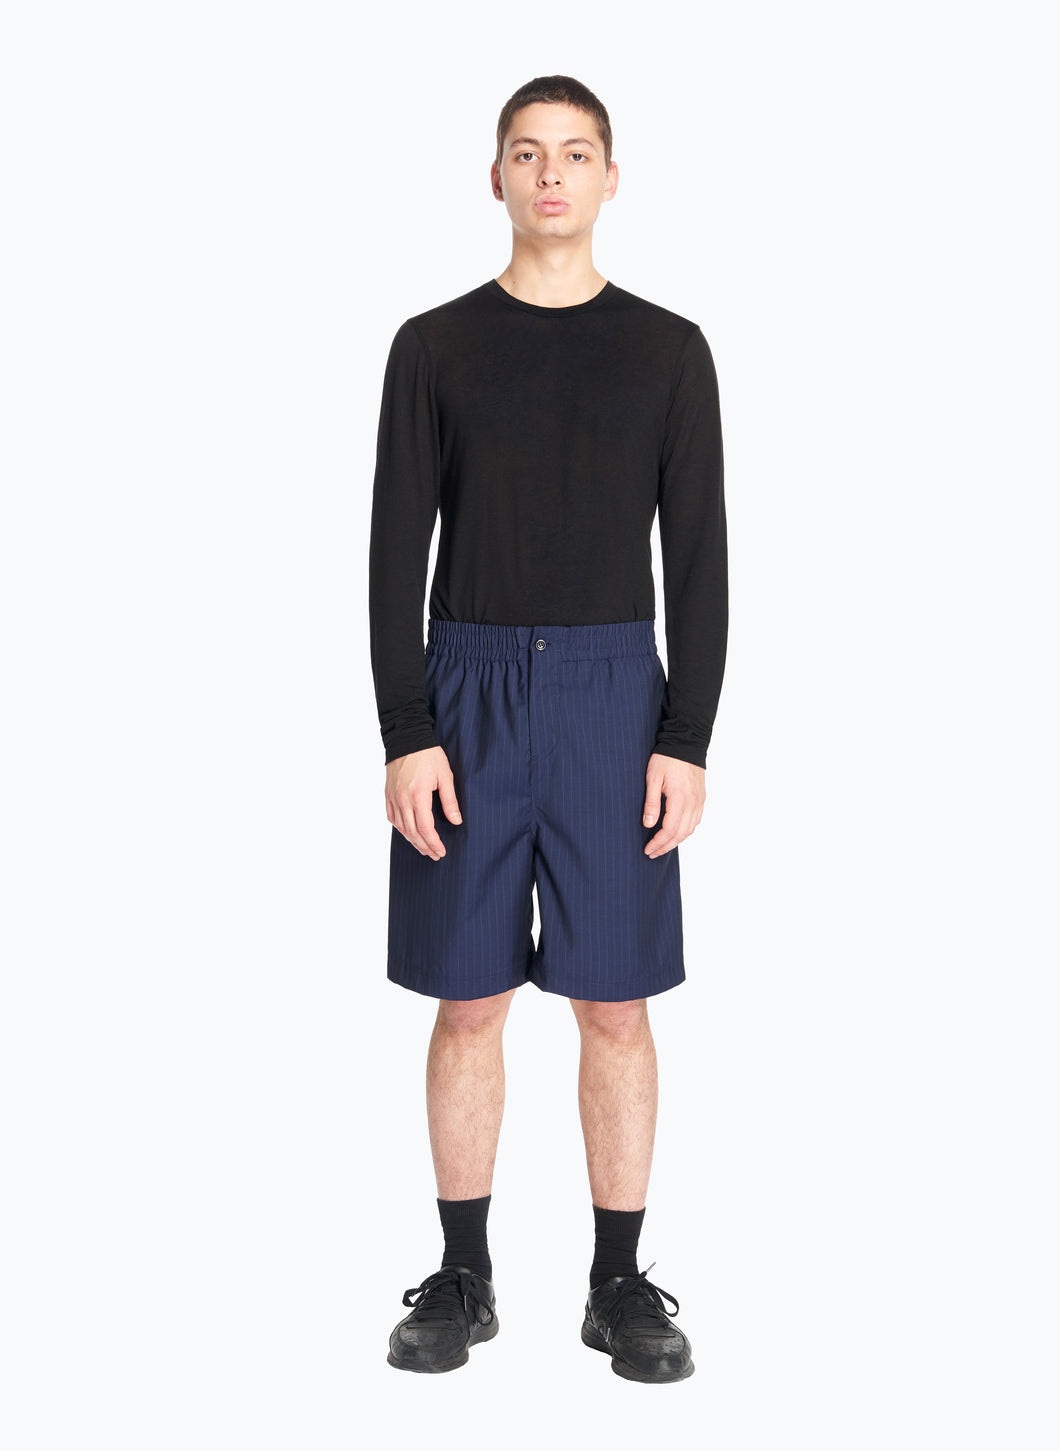 Bermuda Shorts with Stitched Waist in Navy Blue Striped Cool Wool